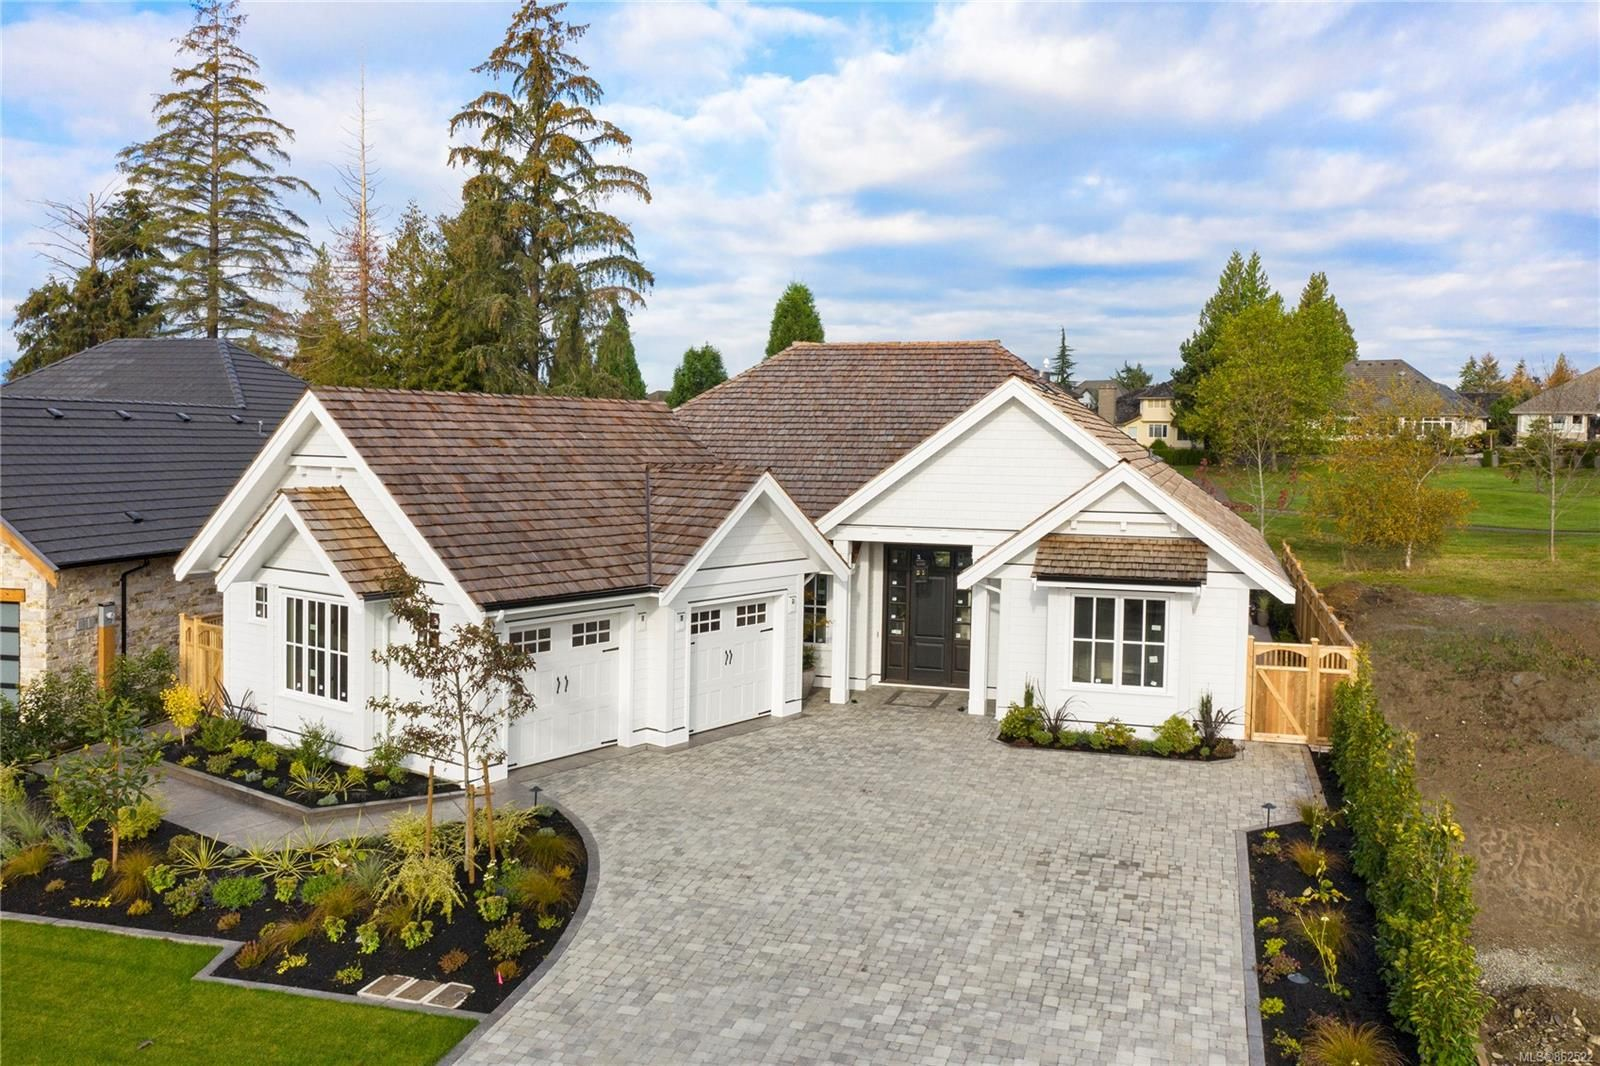 Main Photo: 2764 Sheffield Cres in : CV Crown Isle House for sale (Comox Valley)  : MLS®# 862522